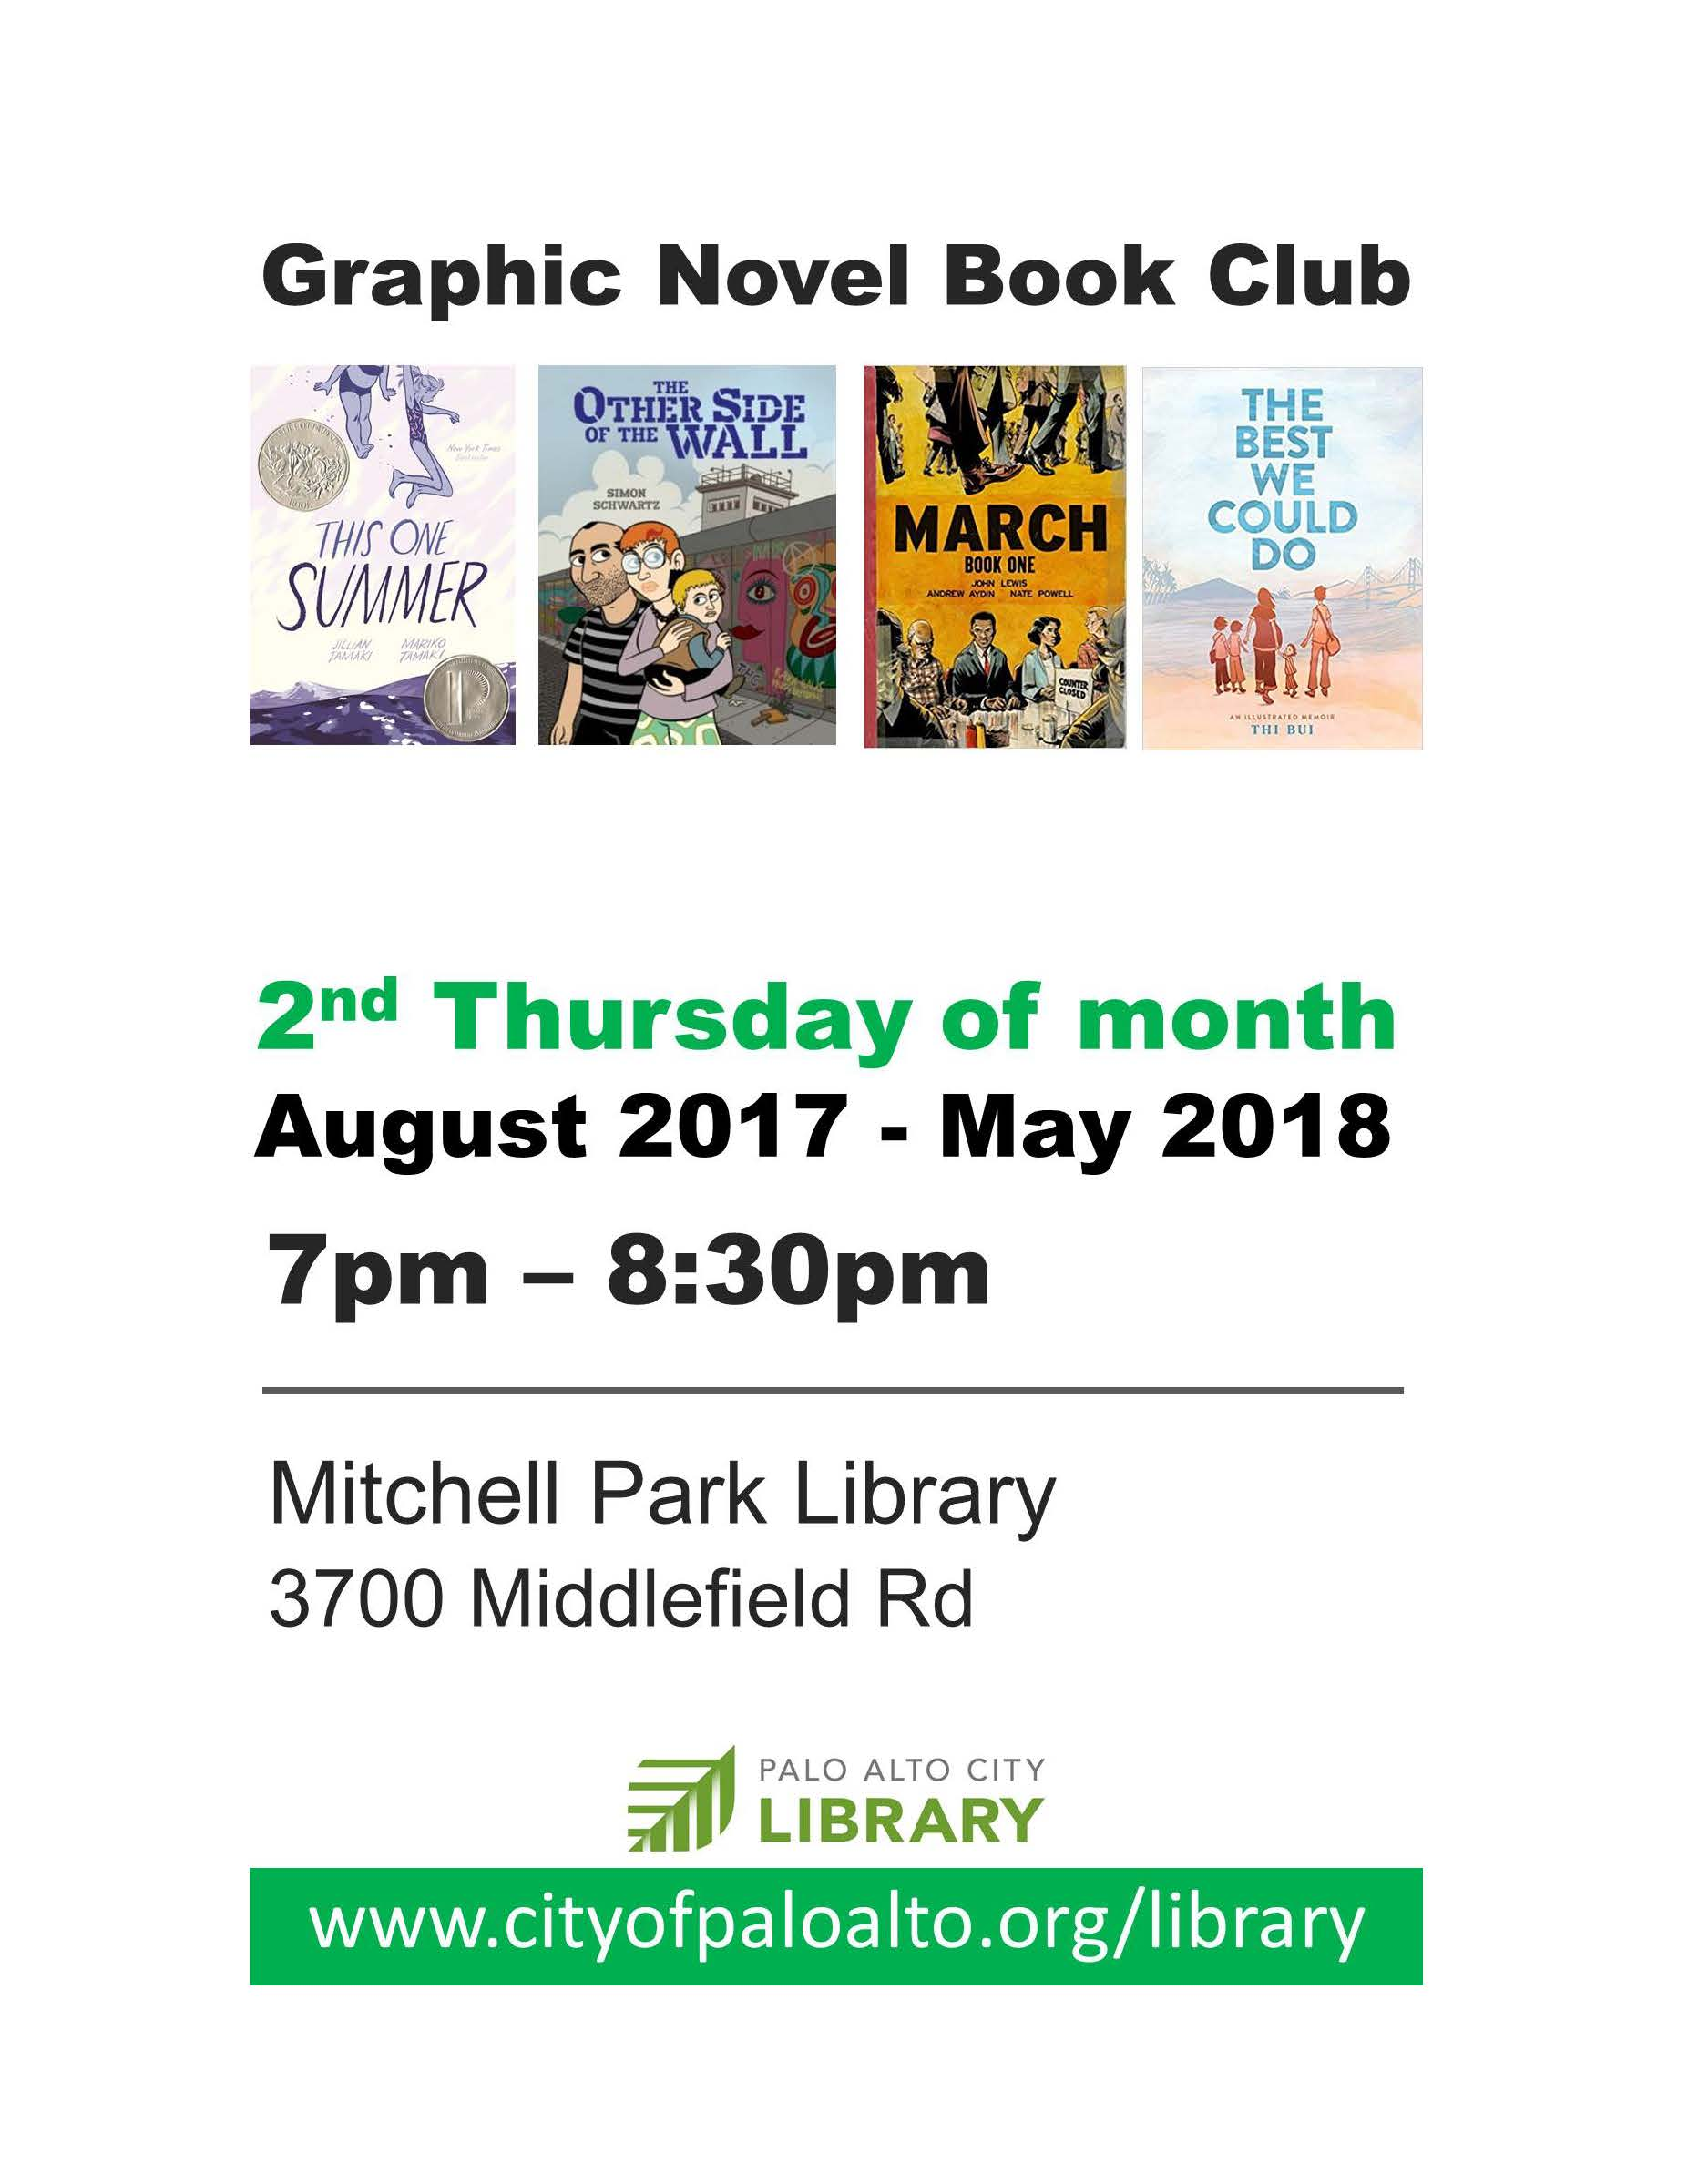 2017-18 Graphic Novel Book Club in Palo Alto. Daniele Archambault, facilitator.P. 2.